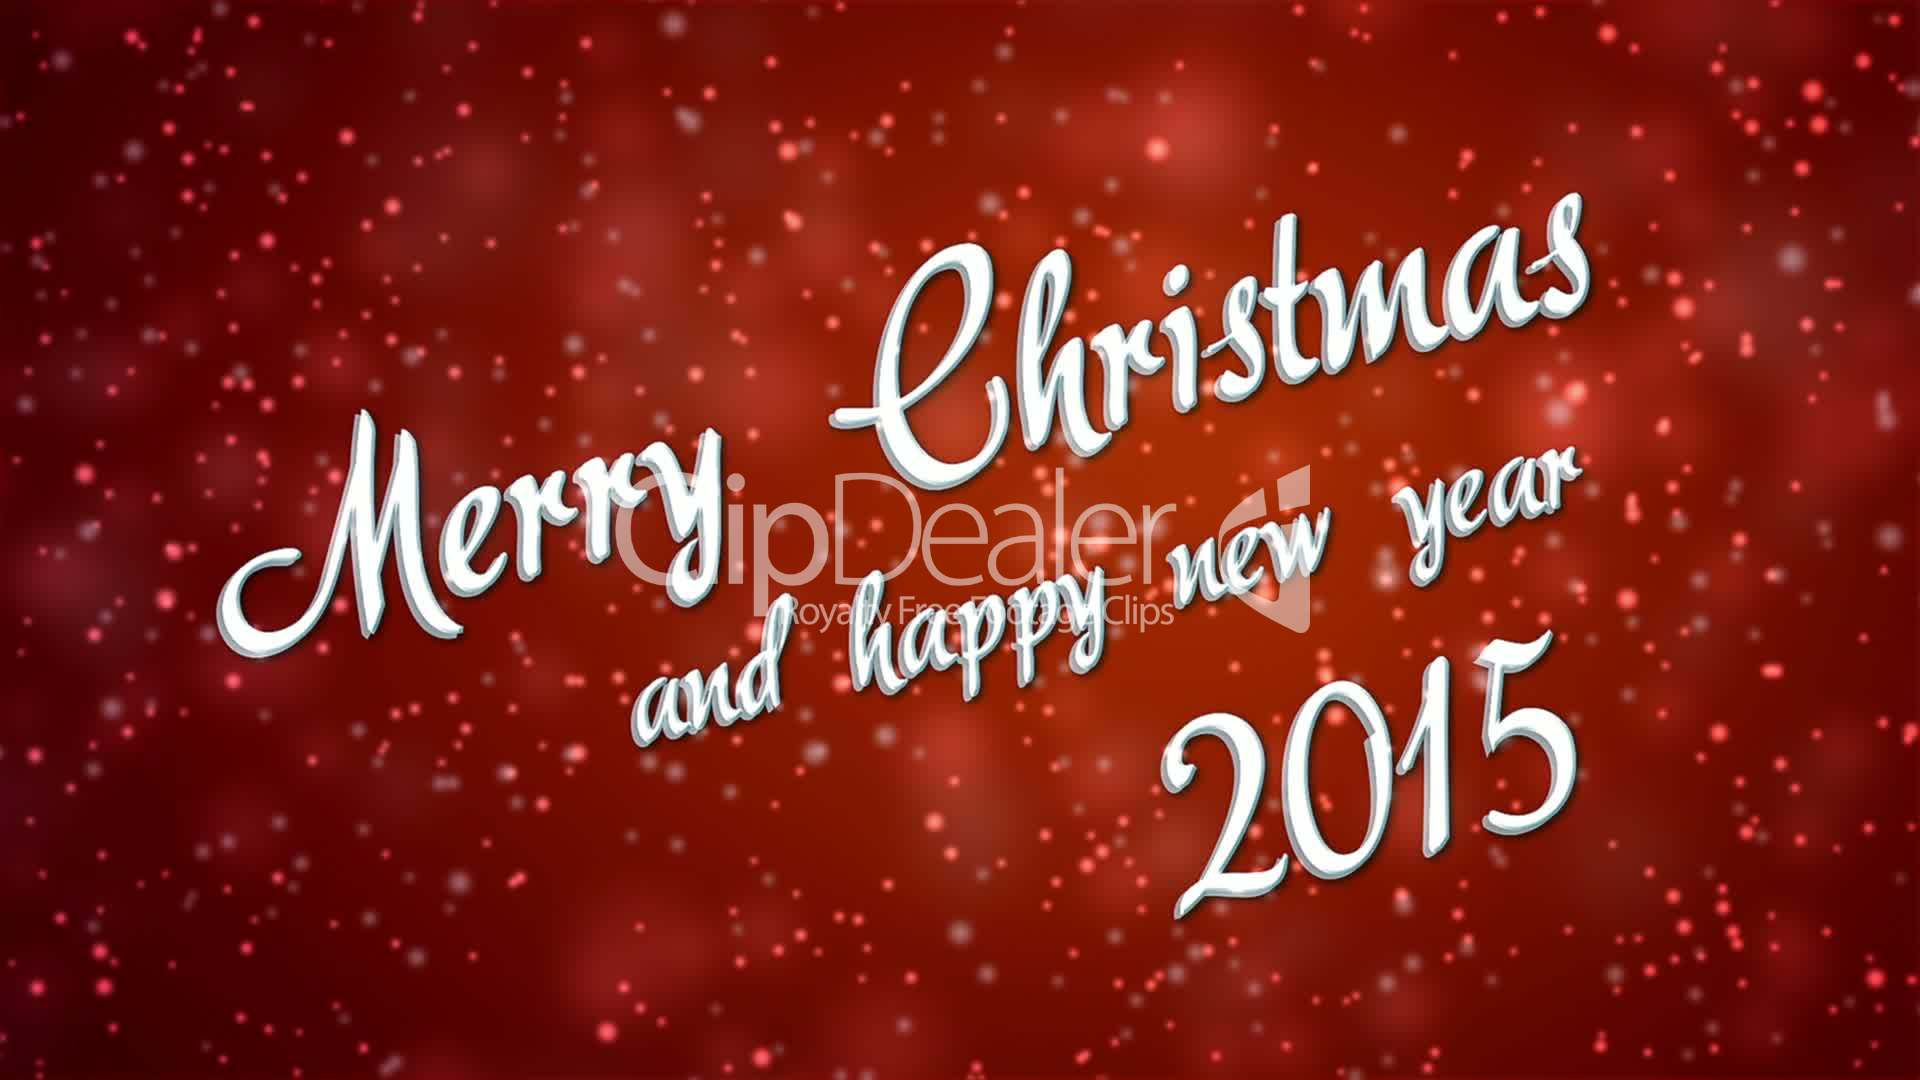 Merry Christmas Greeting Loop Royalty Free Video And Stock Footage